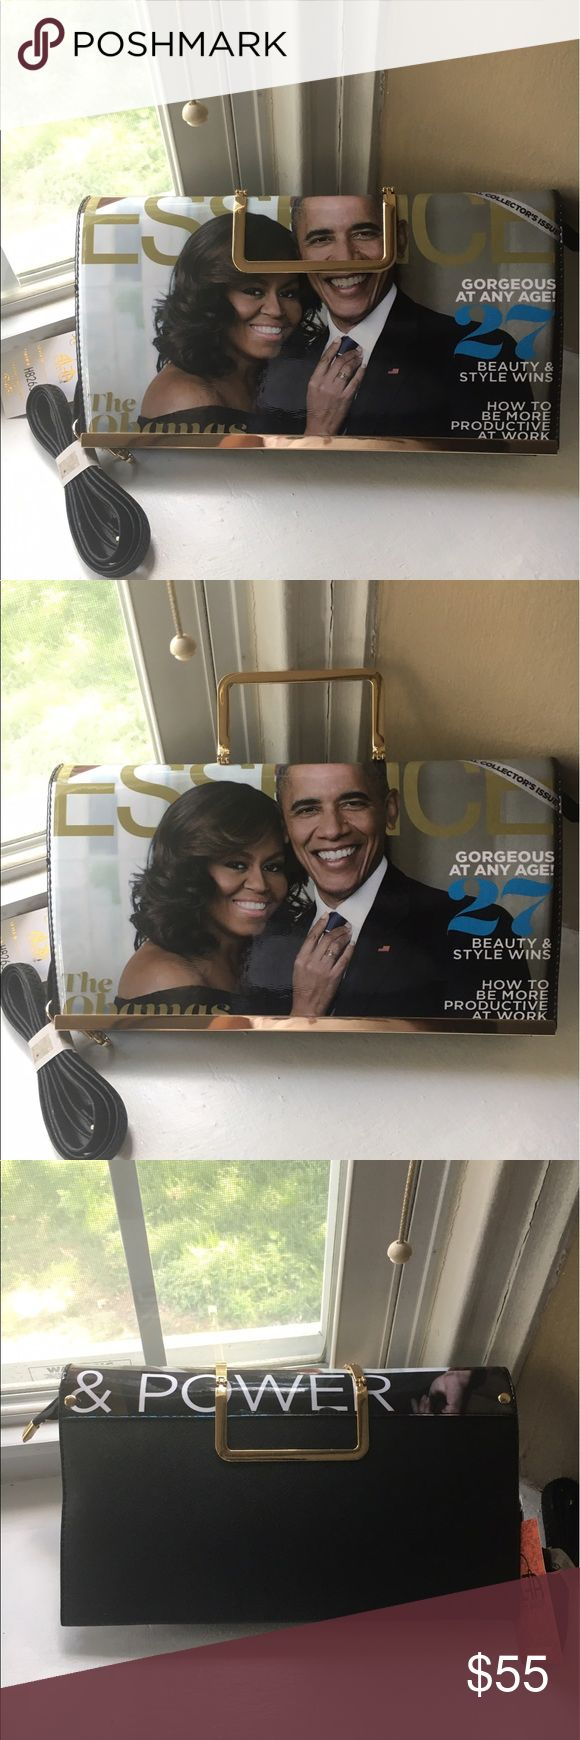 New  Obama handbag 👜 special edition A collectible great picture of  Mr Obama and Mrs Obama on the magazine cover Essence brass adjustable handle. Long shoulder strap. A must have only two left this will not be around long Bags Crossbody Bags